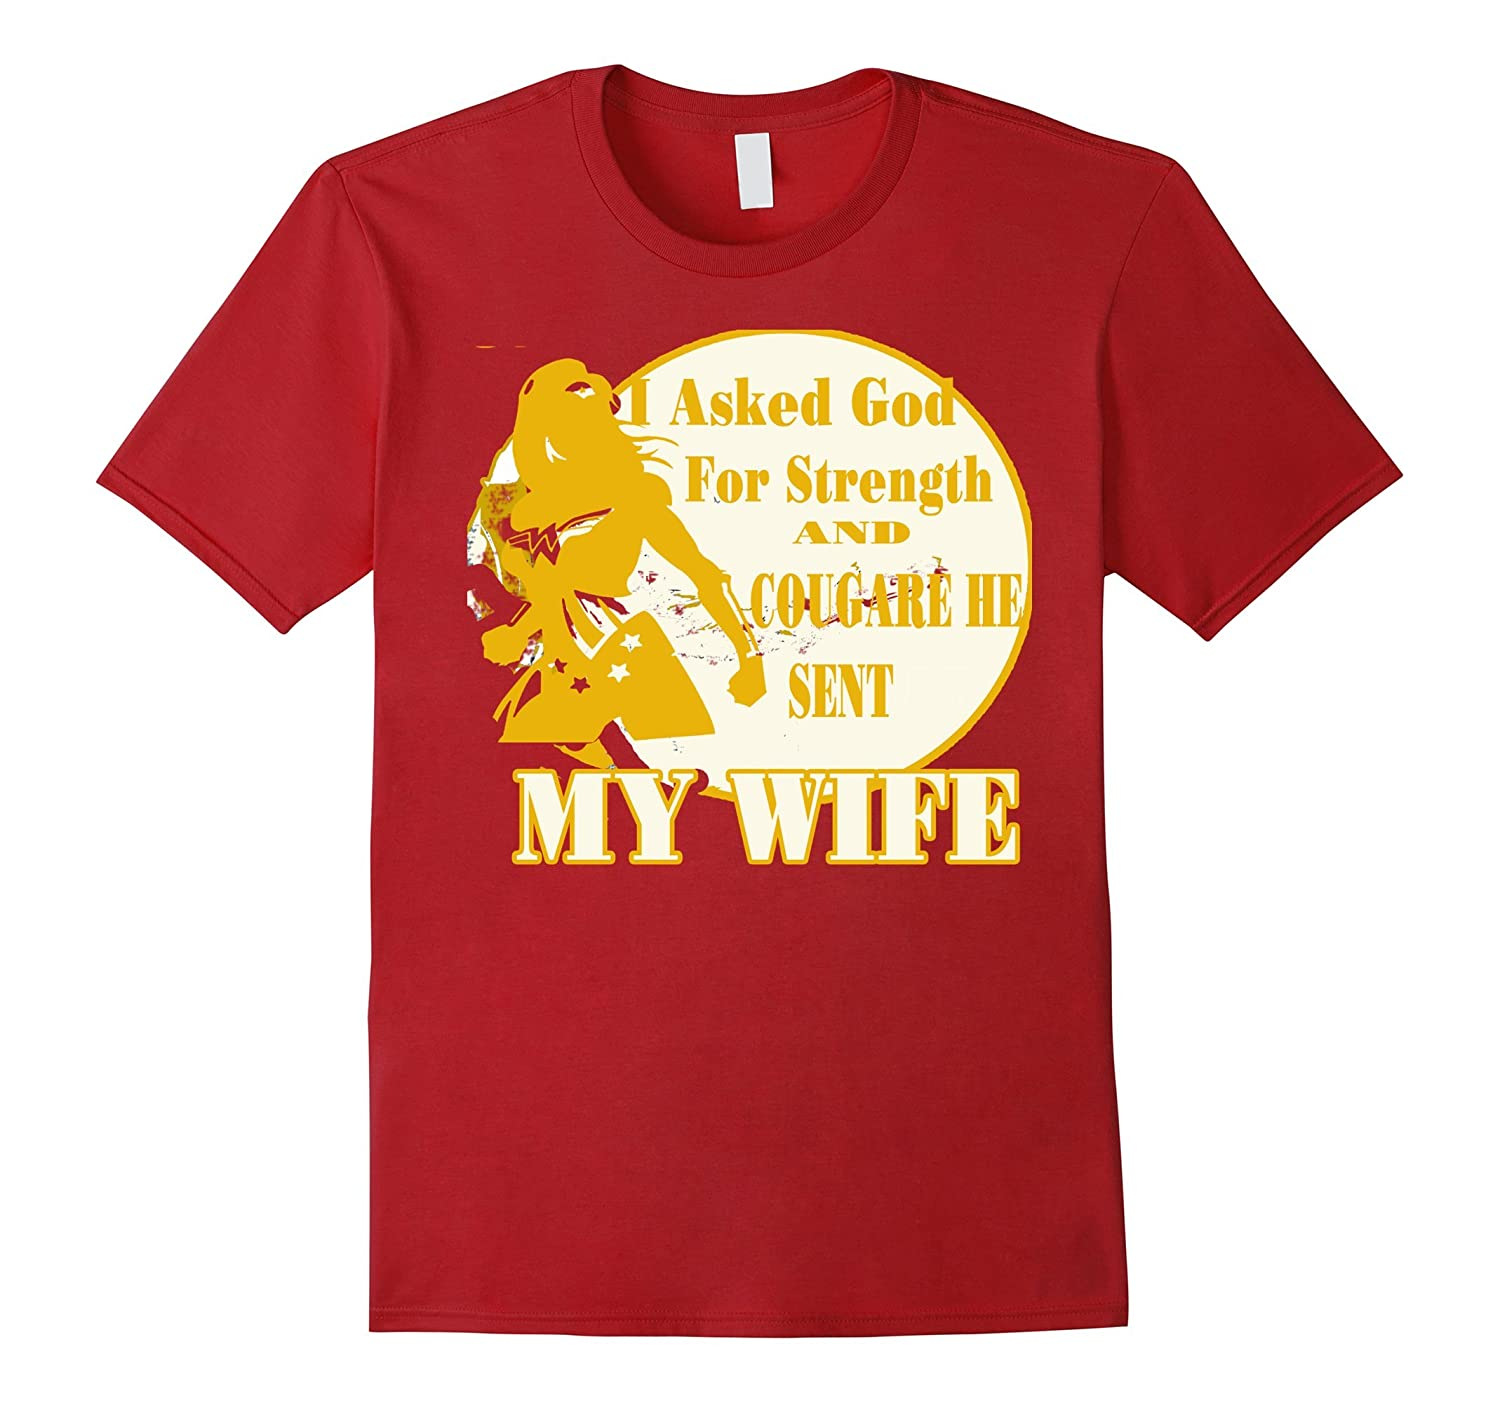 I Asked God For Strength And Courage He Sent My Wife